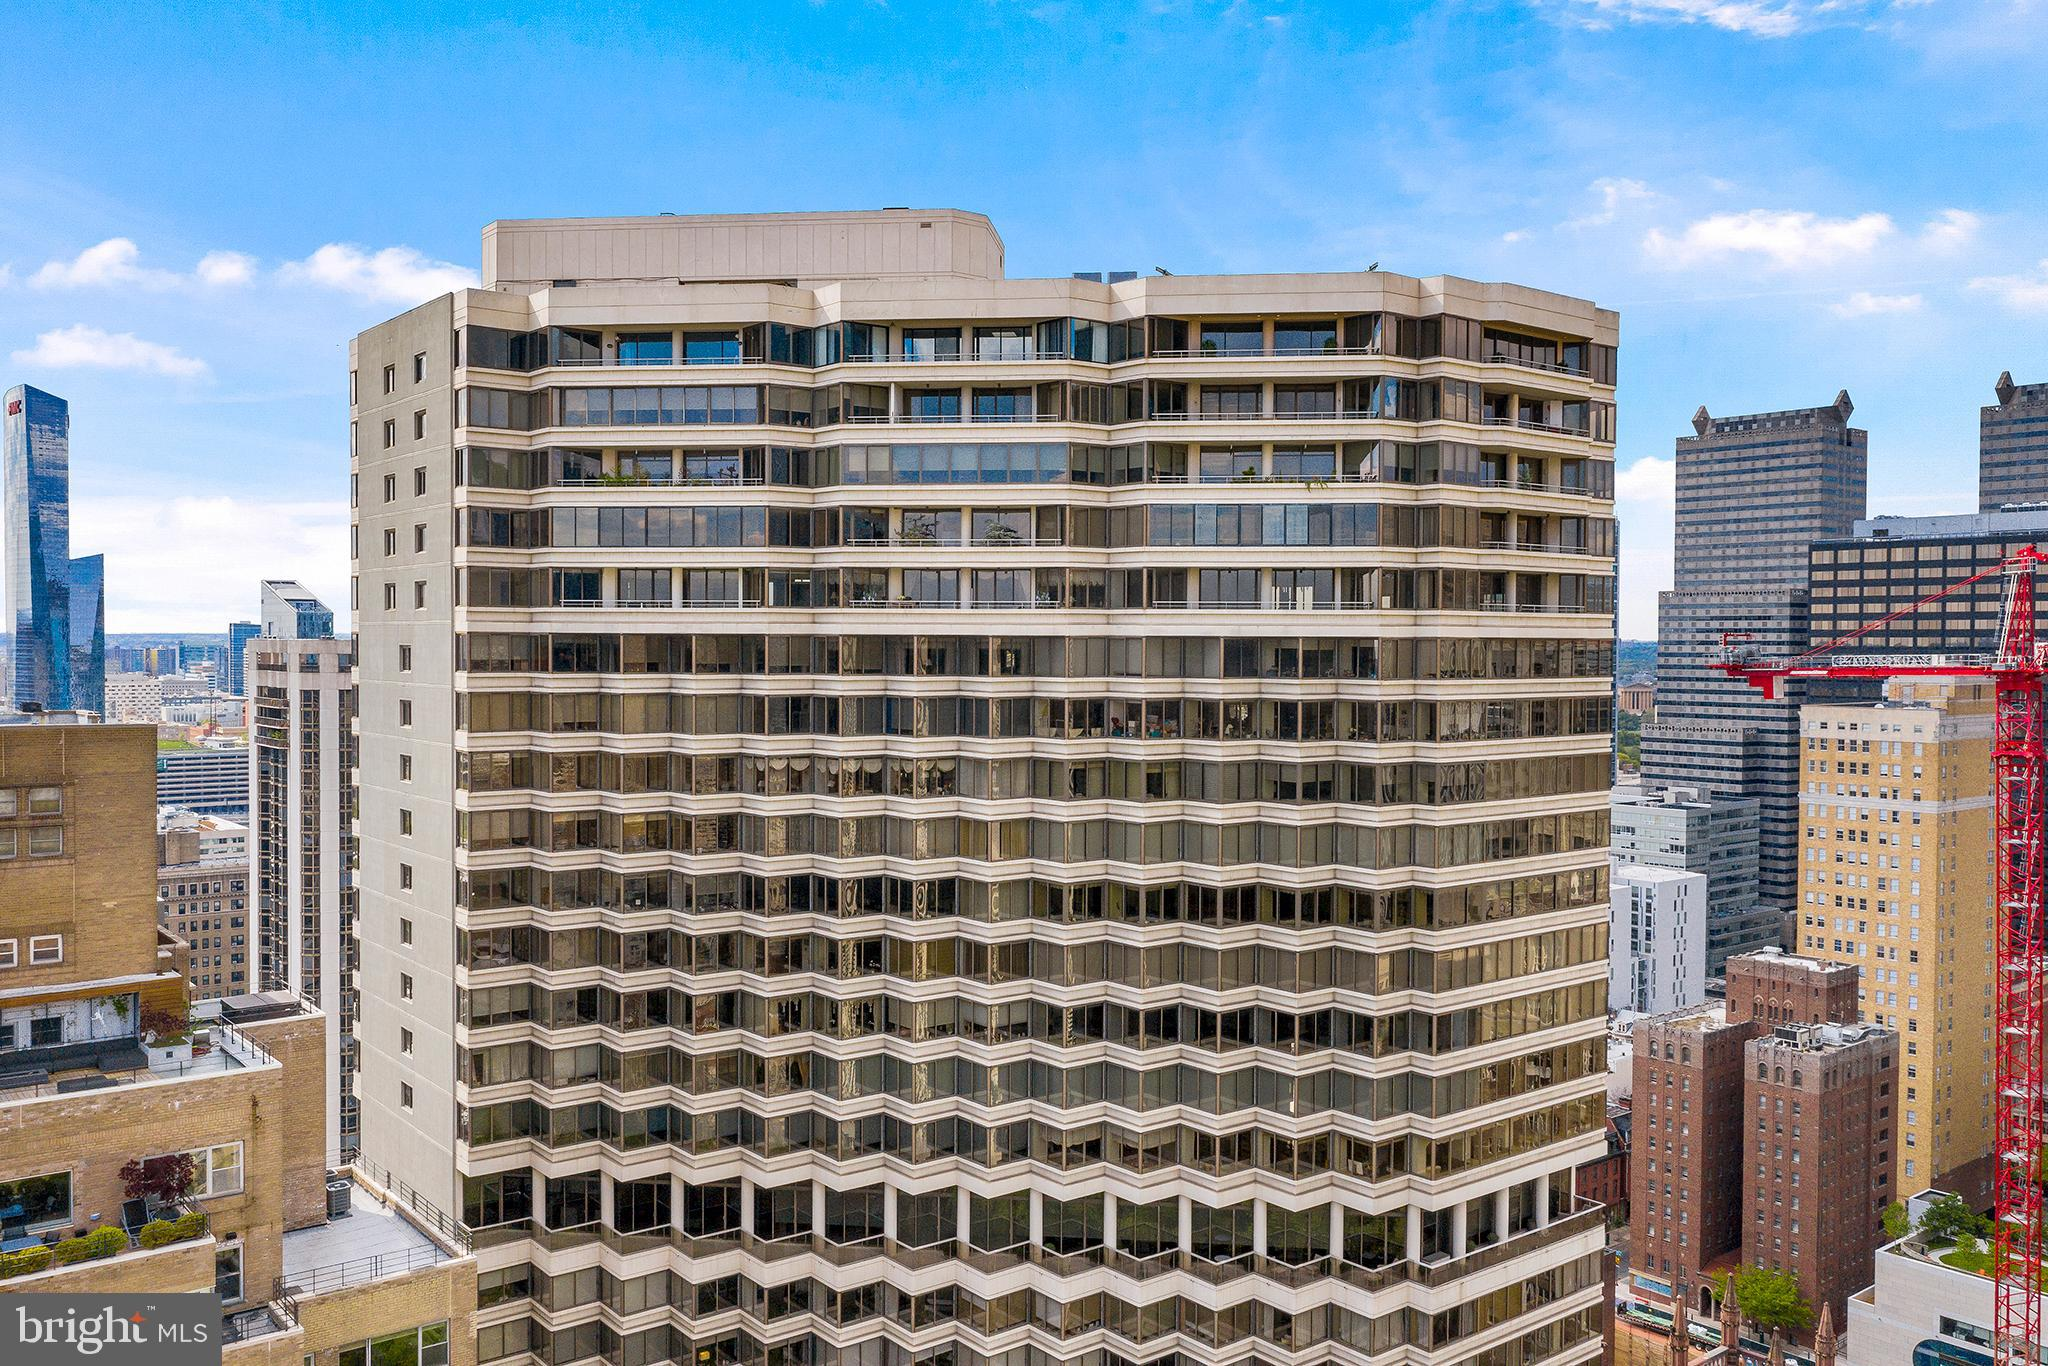 """A RARE opportunity to combine units 2903 and 2904 and live on Rittenhouse square in a wonderful 6000 square foot  penthouse location with fantastic views of the square and city skyline.  Please view the Matterport virtual tour of the current condition and the 3D tour for the virtual rendering  possibilities. By clicking on the green tags, you will see the explanation and the possibilities ! This unit, will truly be """"A One Of A Kind"""" home and is ready for your custom build out and any amenities you choose.  Accessible balconies for true relaxation, dining and entertaining and panoramic views! ( shown in the 3D tour).  Make your appointment today, bring your favorite designer and create your perfect home in the Philadelphia sky!  Morrissey Design has plans and may be available for hire on the custom build out."""